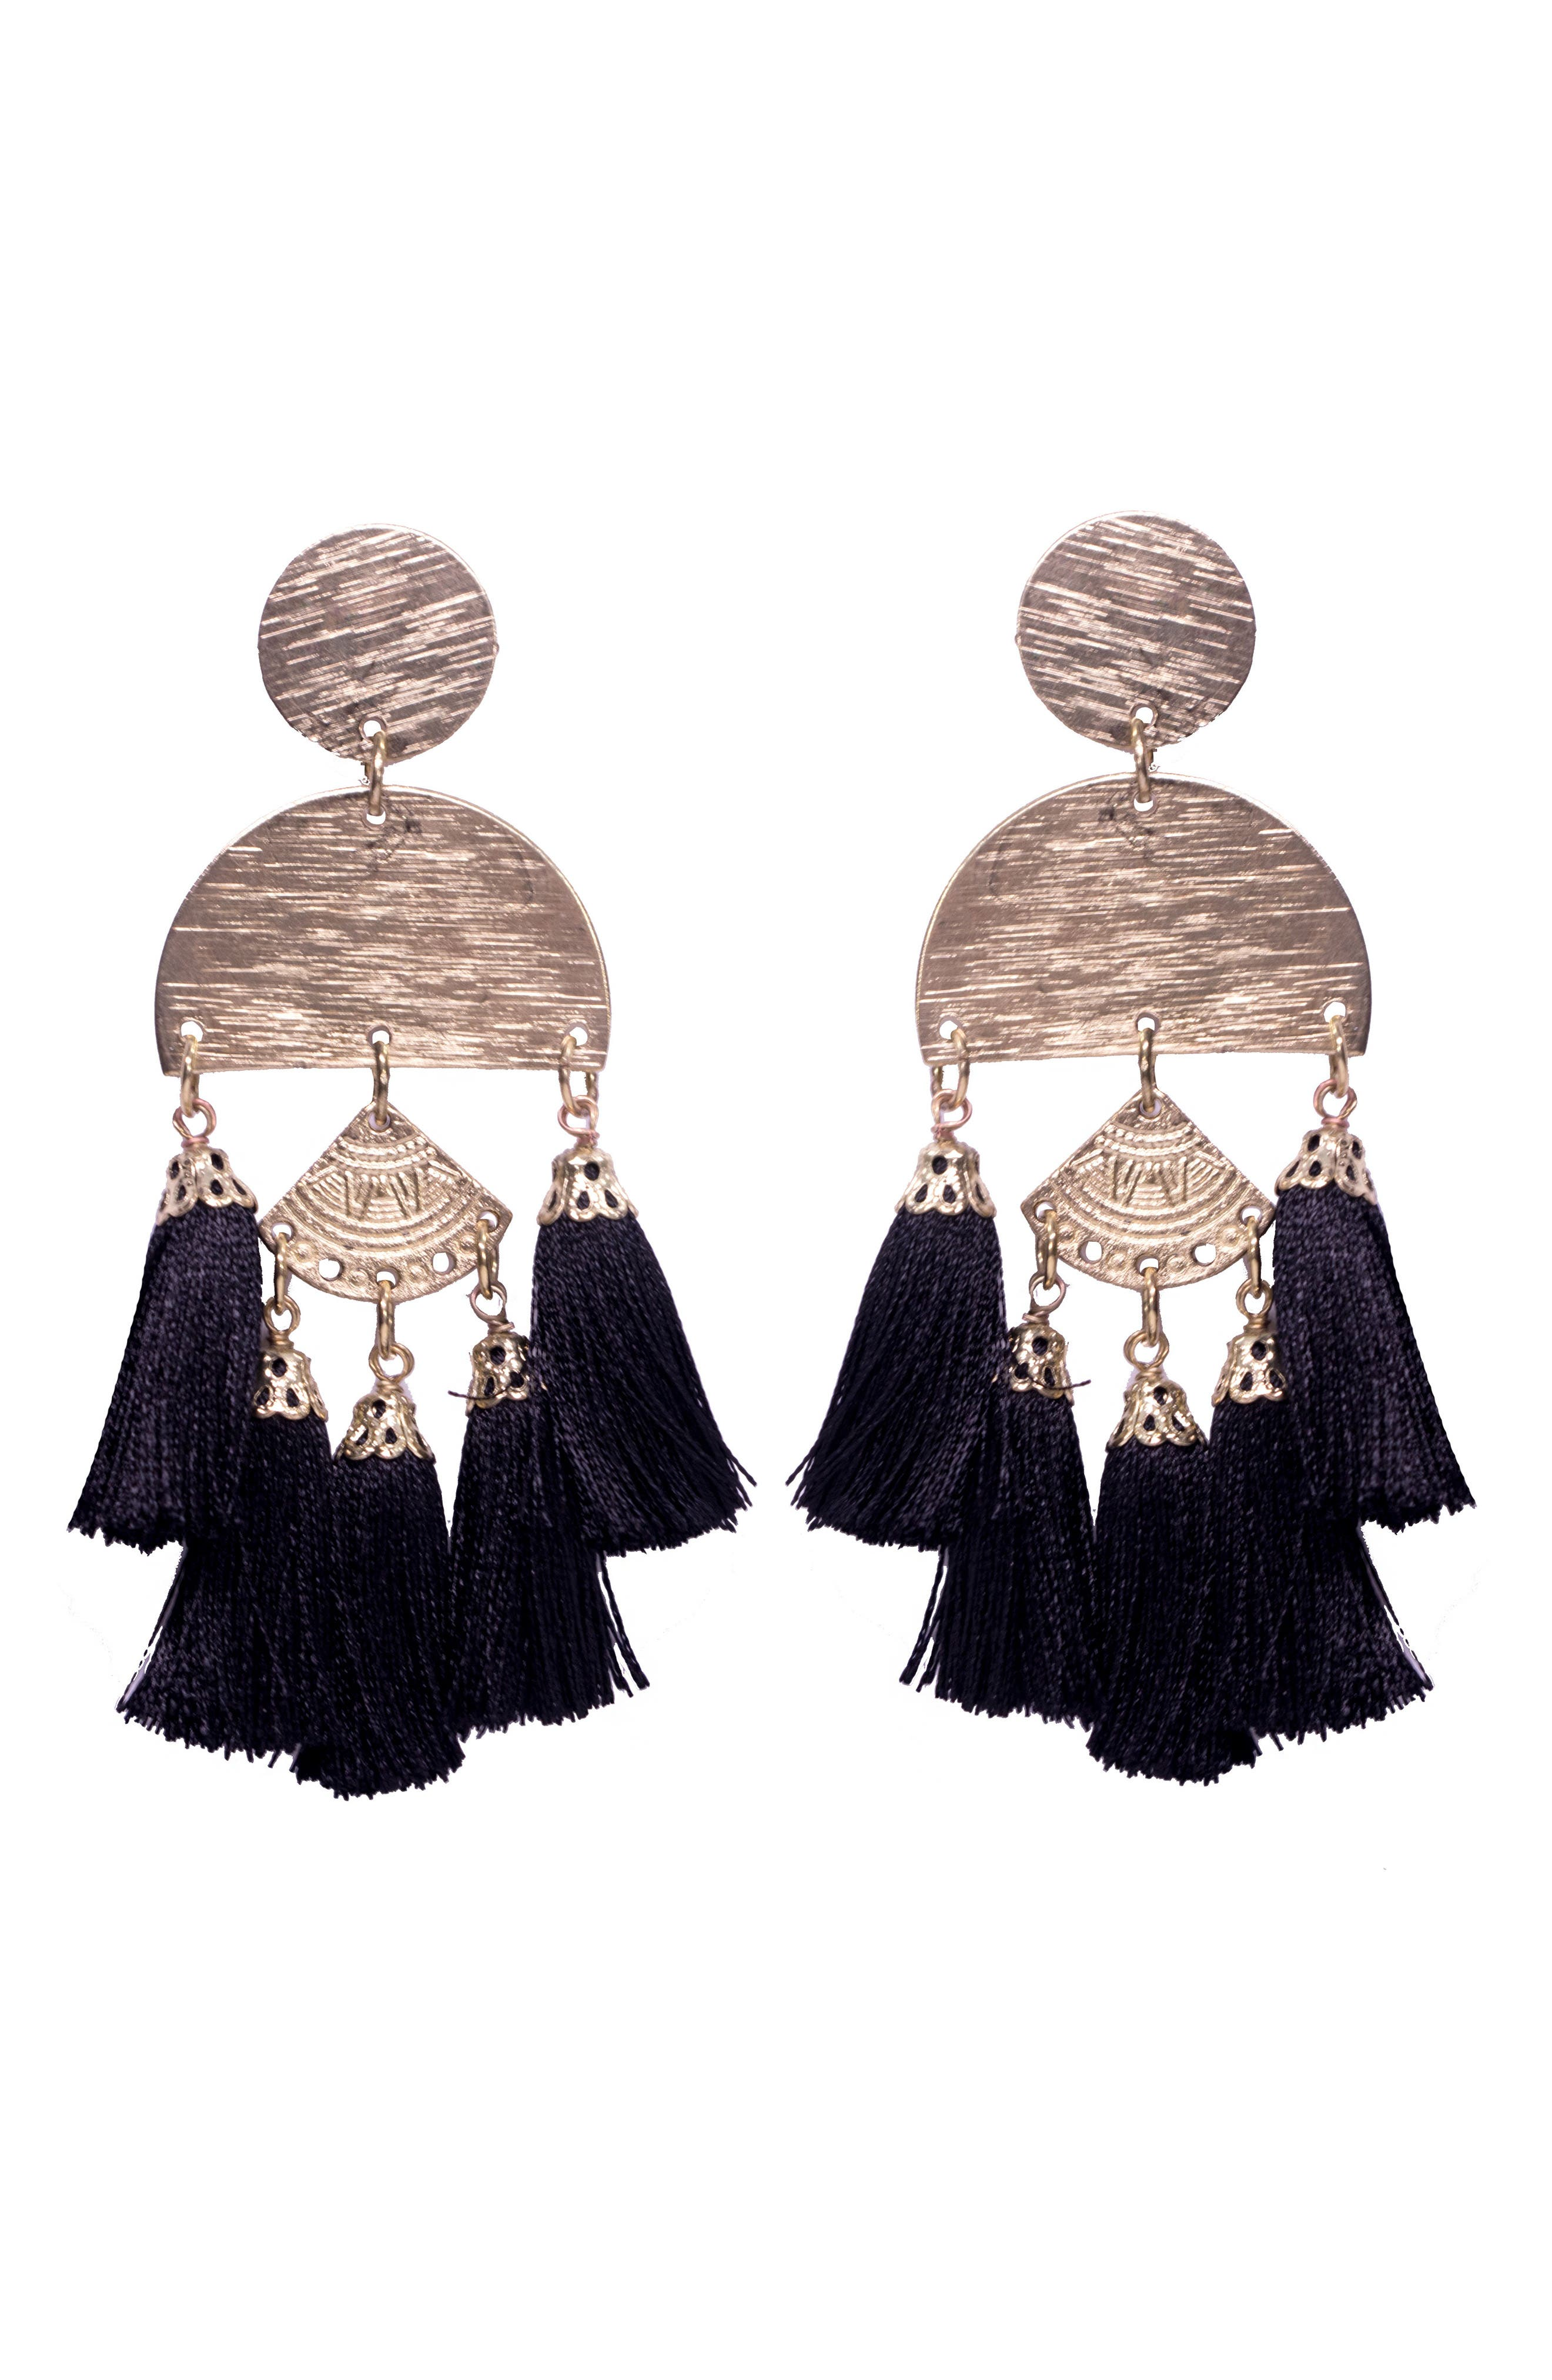 Bali Tassel Earrings,                             Main thumbnail 2, color,